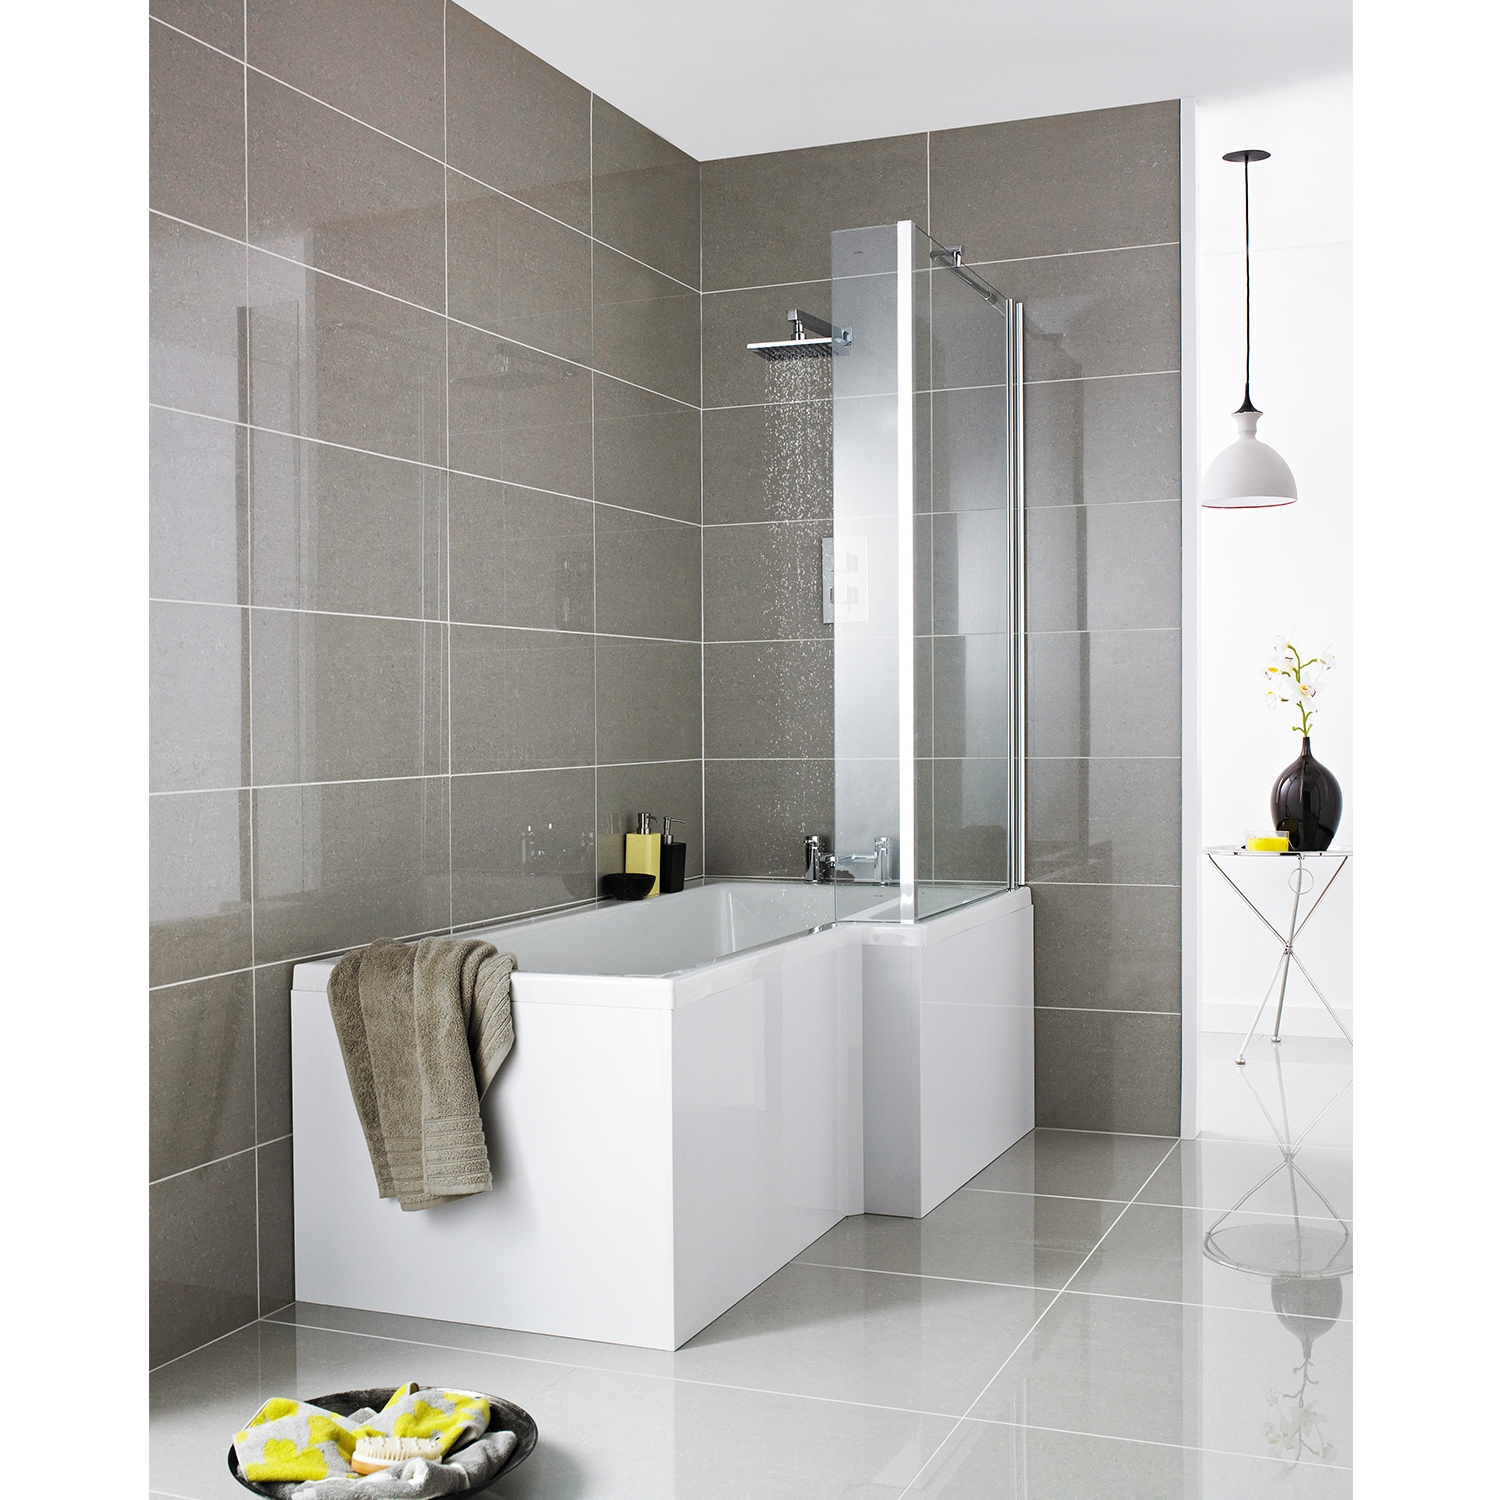 L shaped bath hudson reed square l-shaped eternalite shower bath 1700mm x 700mm/850mm  right handed TLKIJFZ